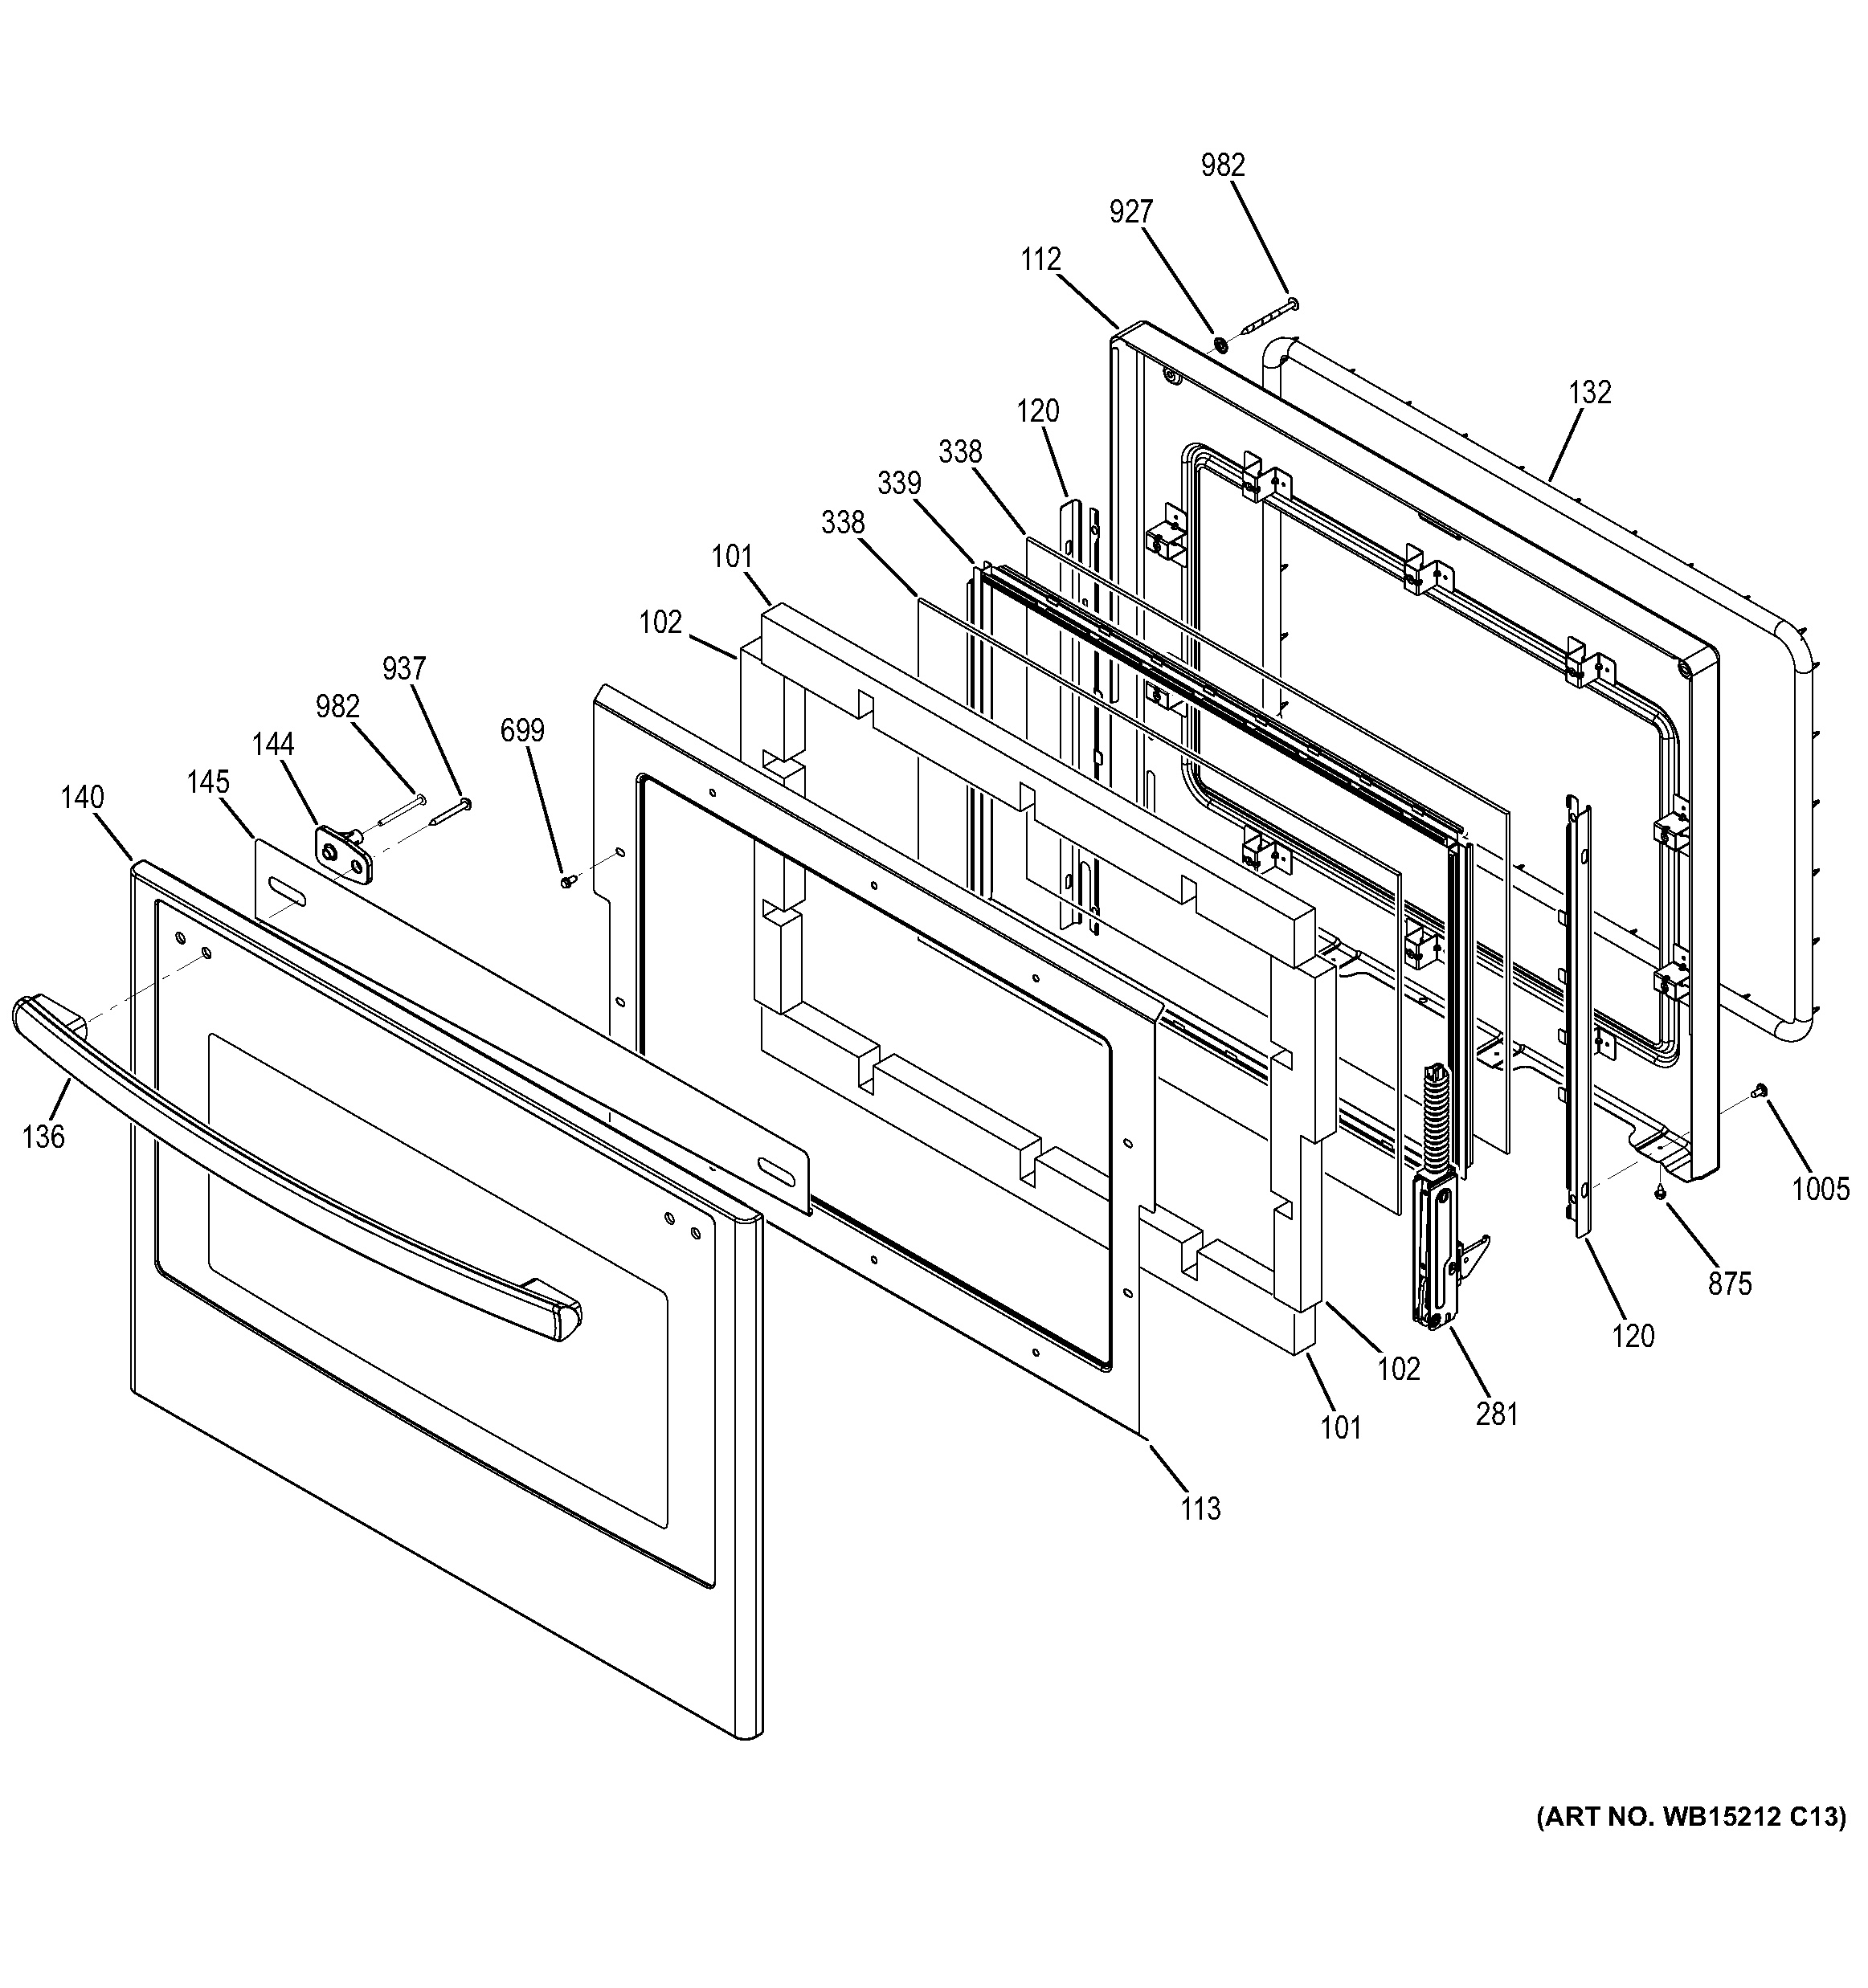 assembly view for door